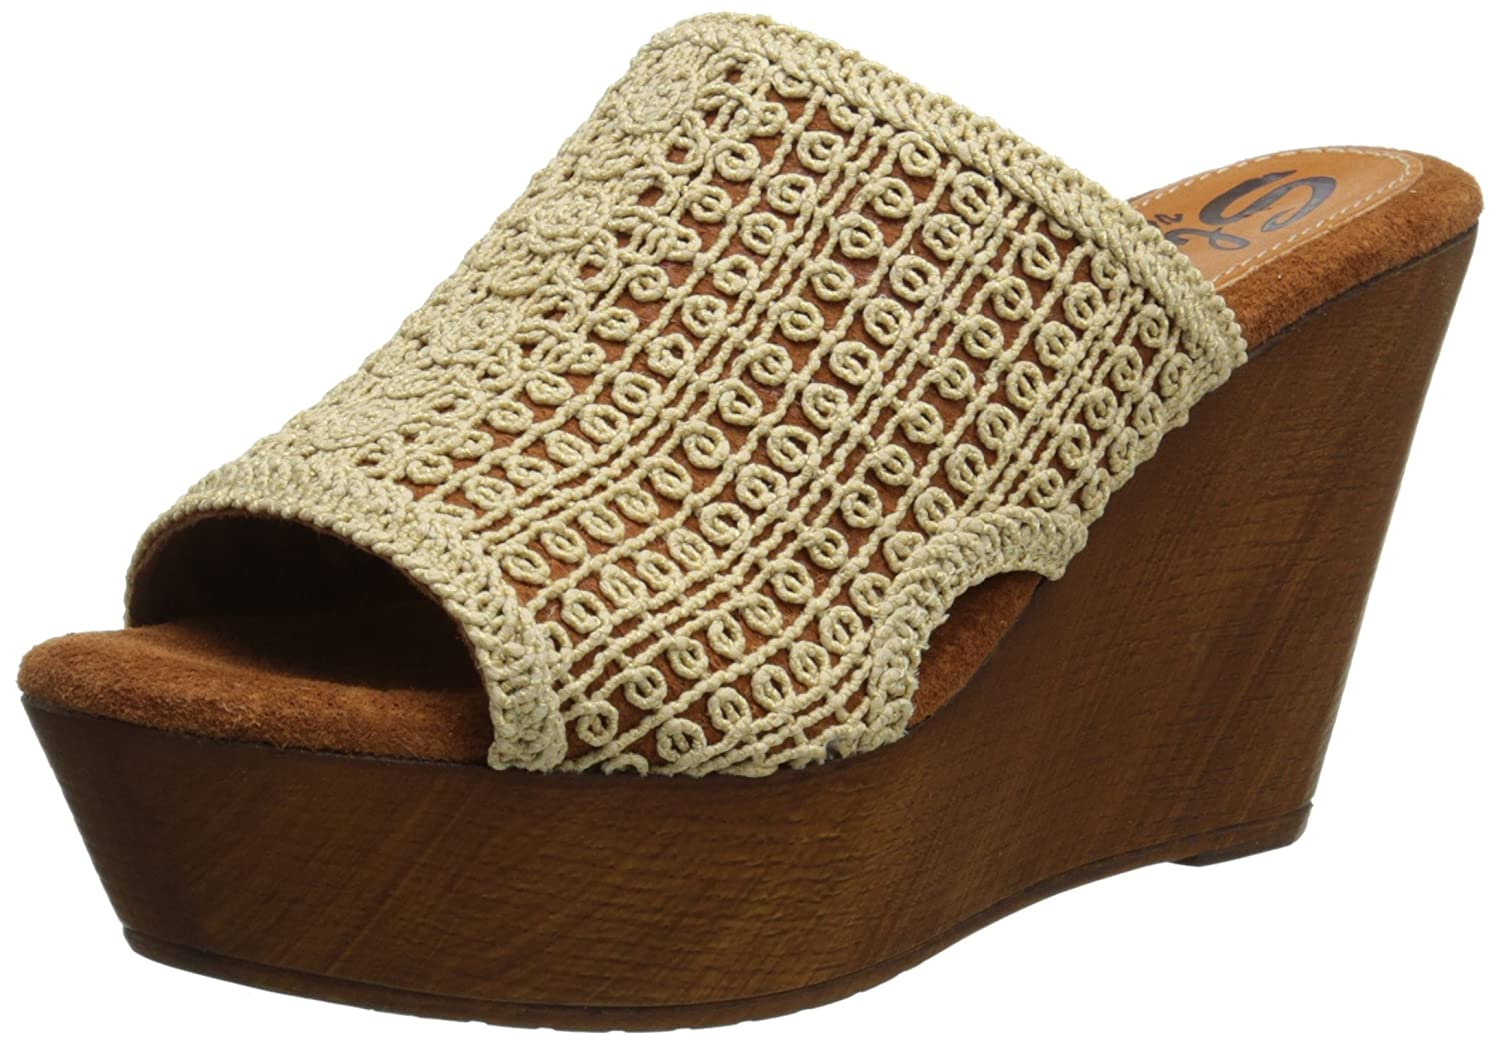 Sbicca Women's Morrobay Wedge Sandal B00O2FMXOA 10 B(M) US|Natural